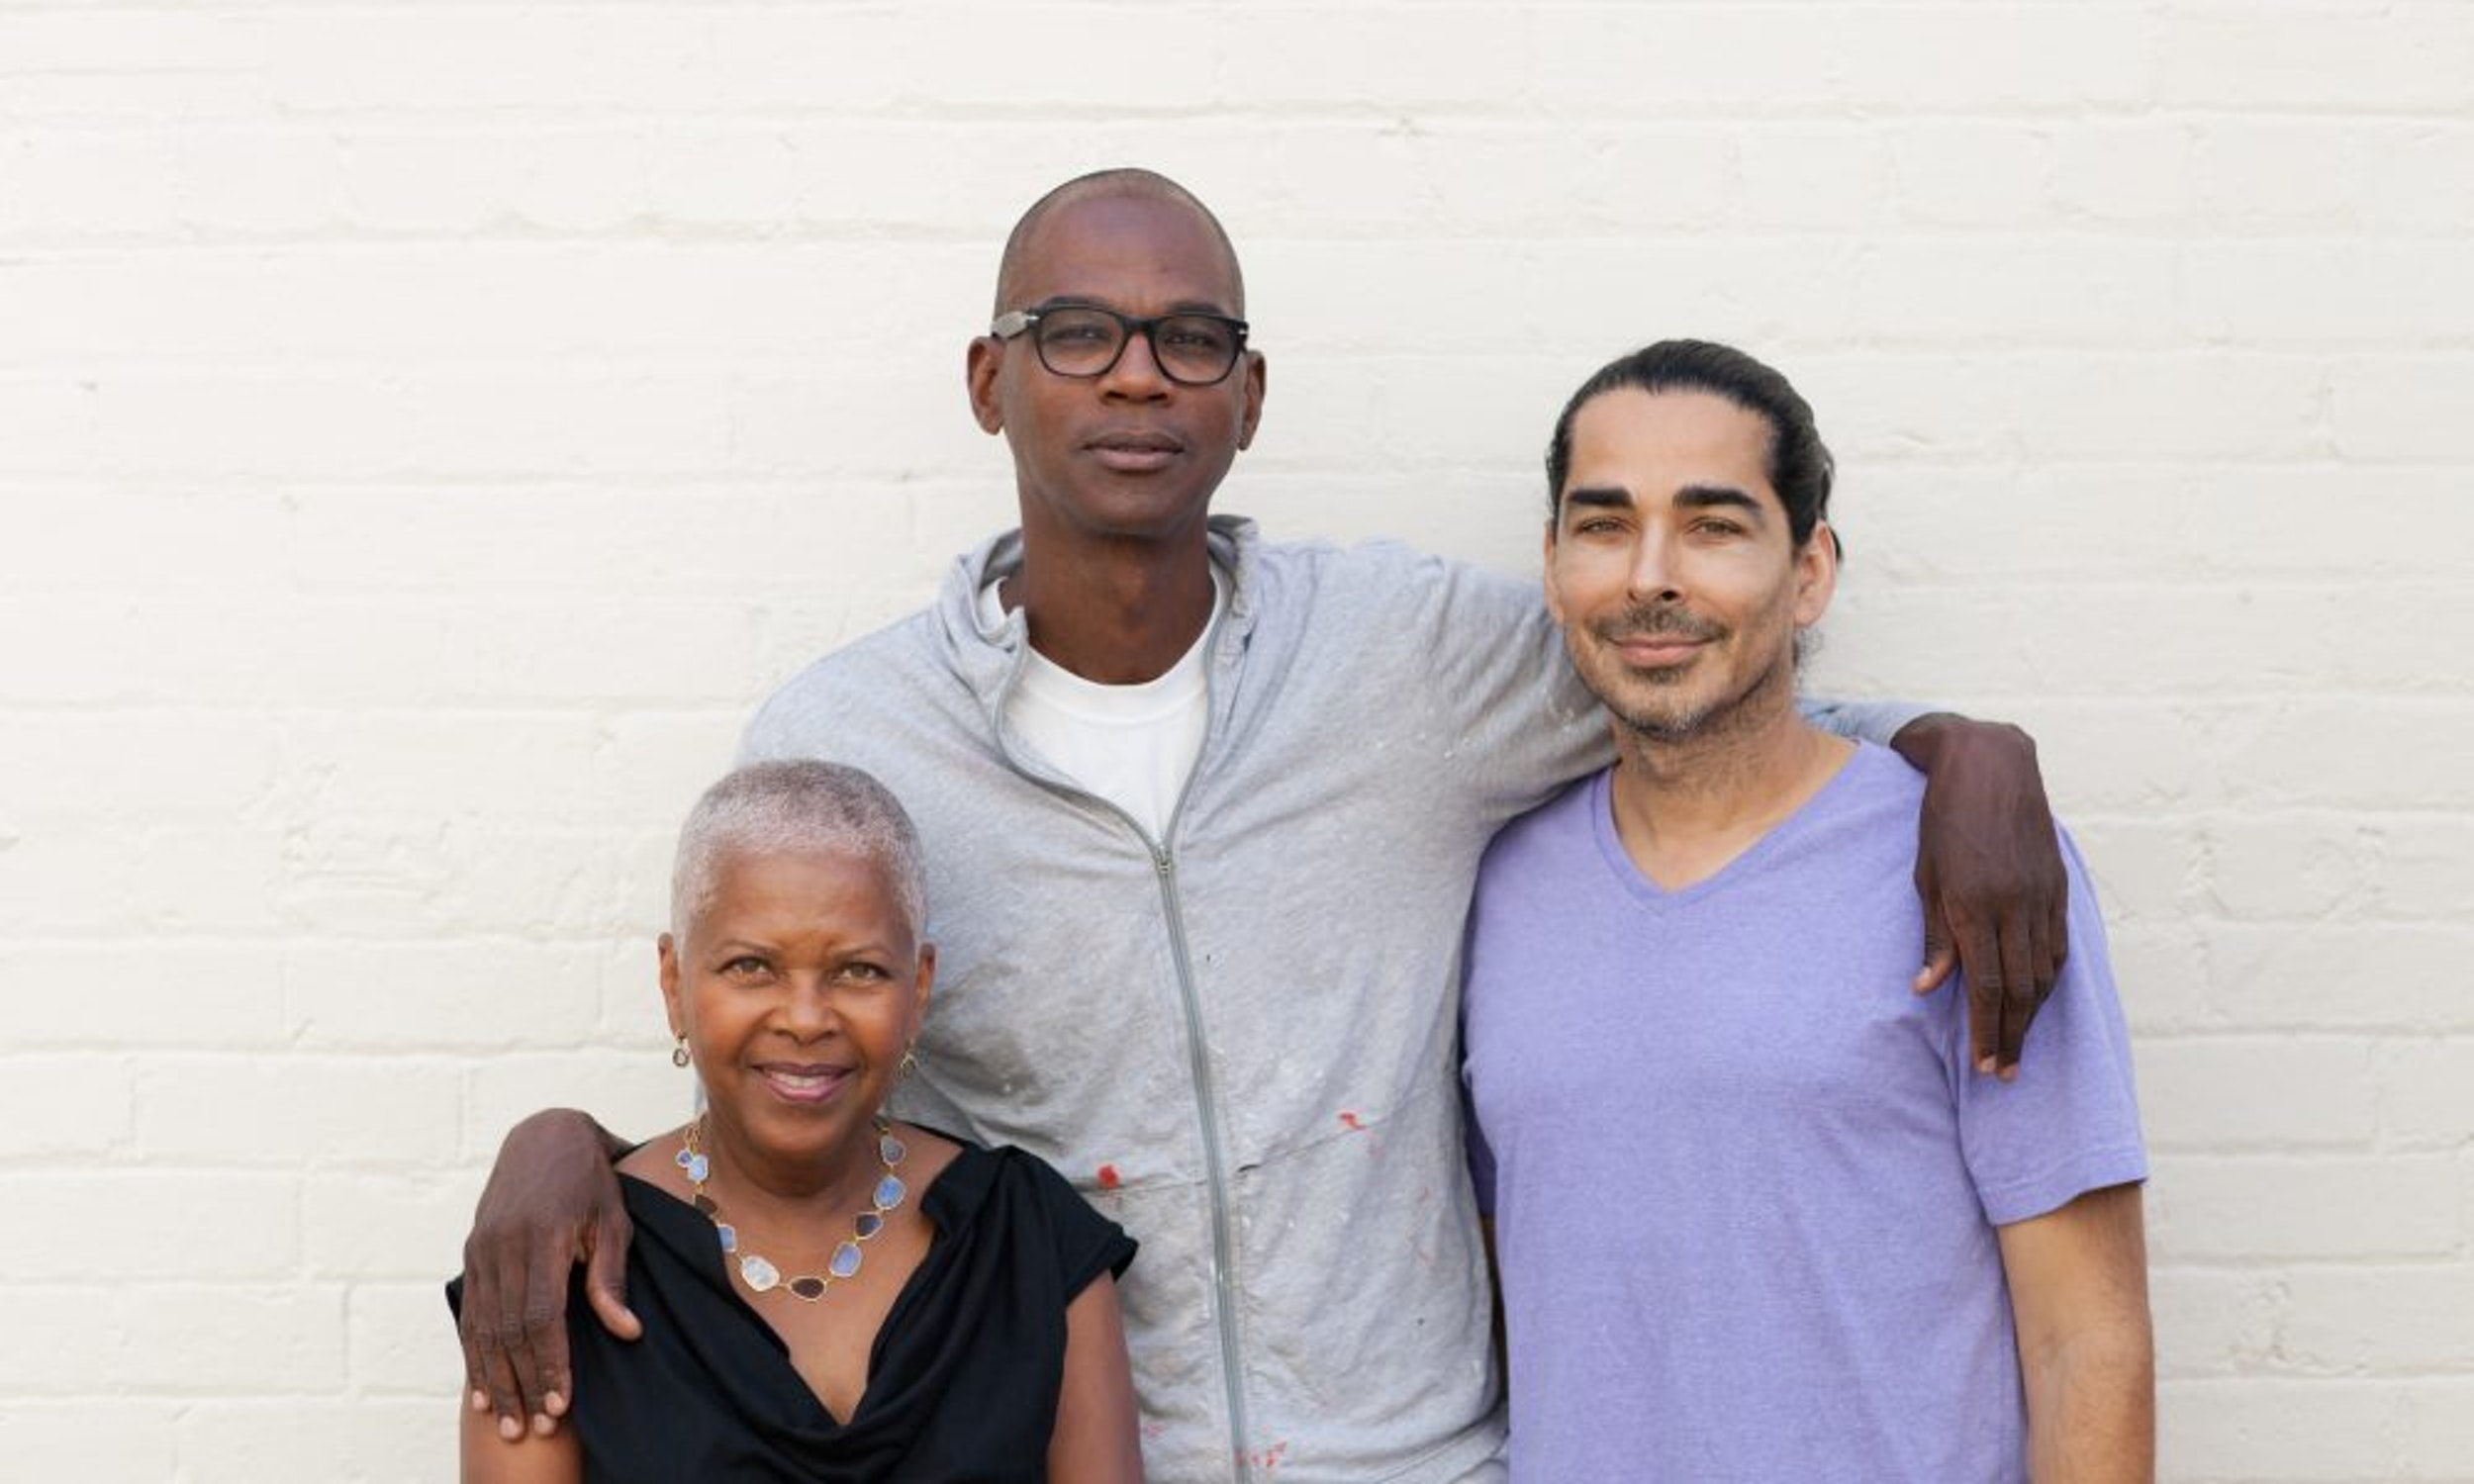 Left to Right: A+P co-founders Eileen Harris Norton, Mark Bradford and Allan DiCastro at Art + Practice, Los Angeles. Photo by Sean Shim-Boyle.